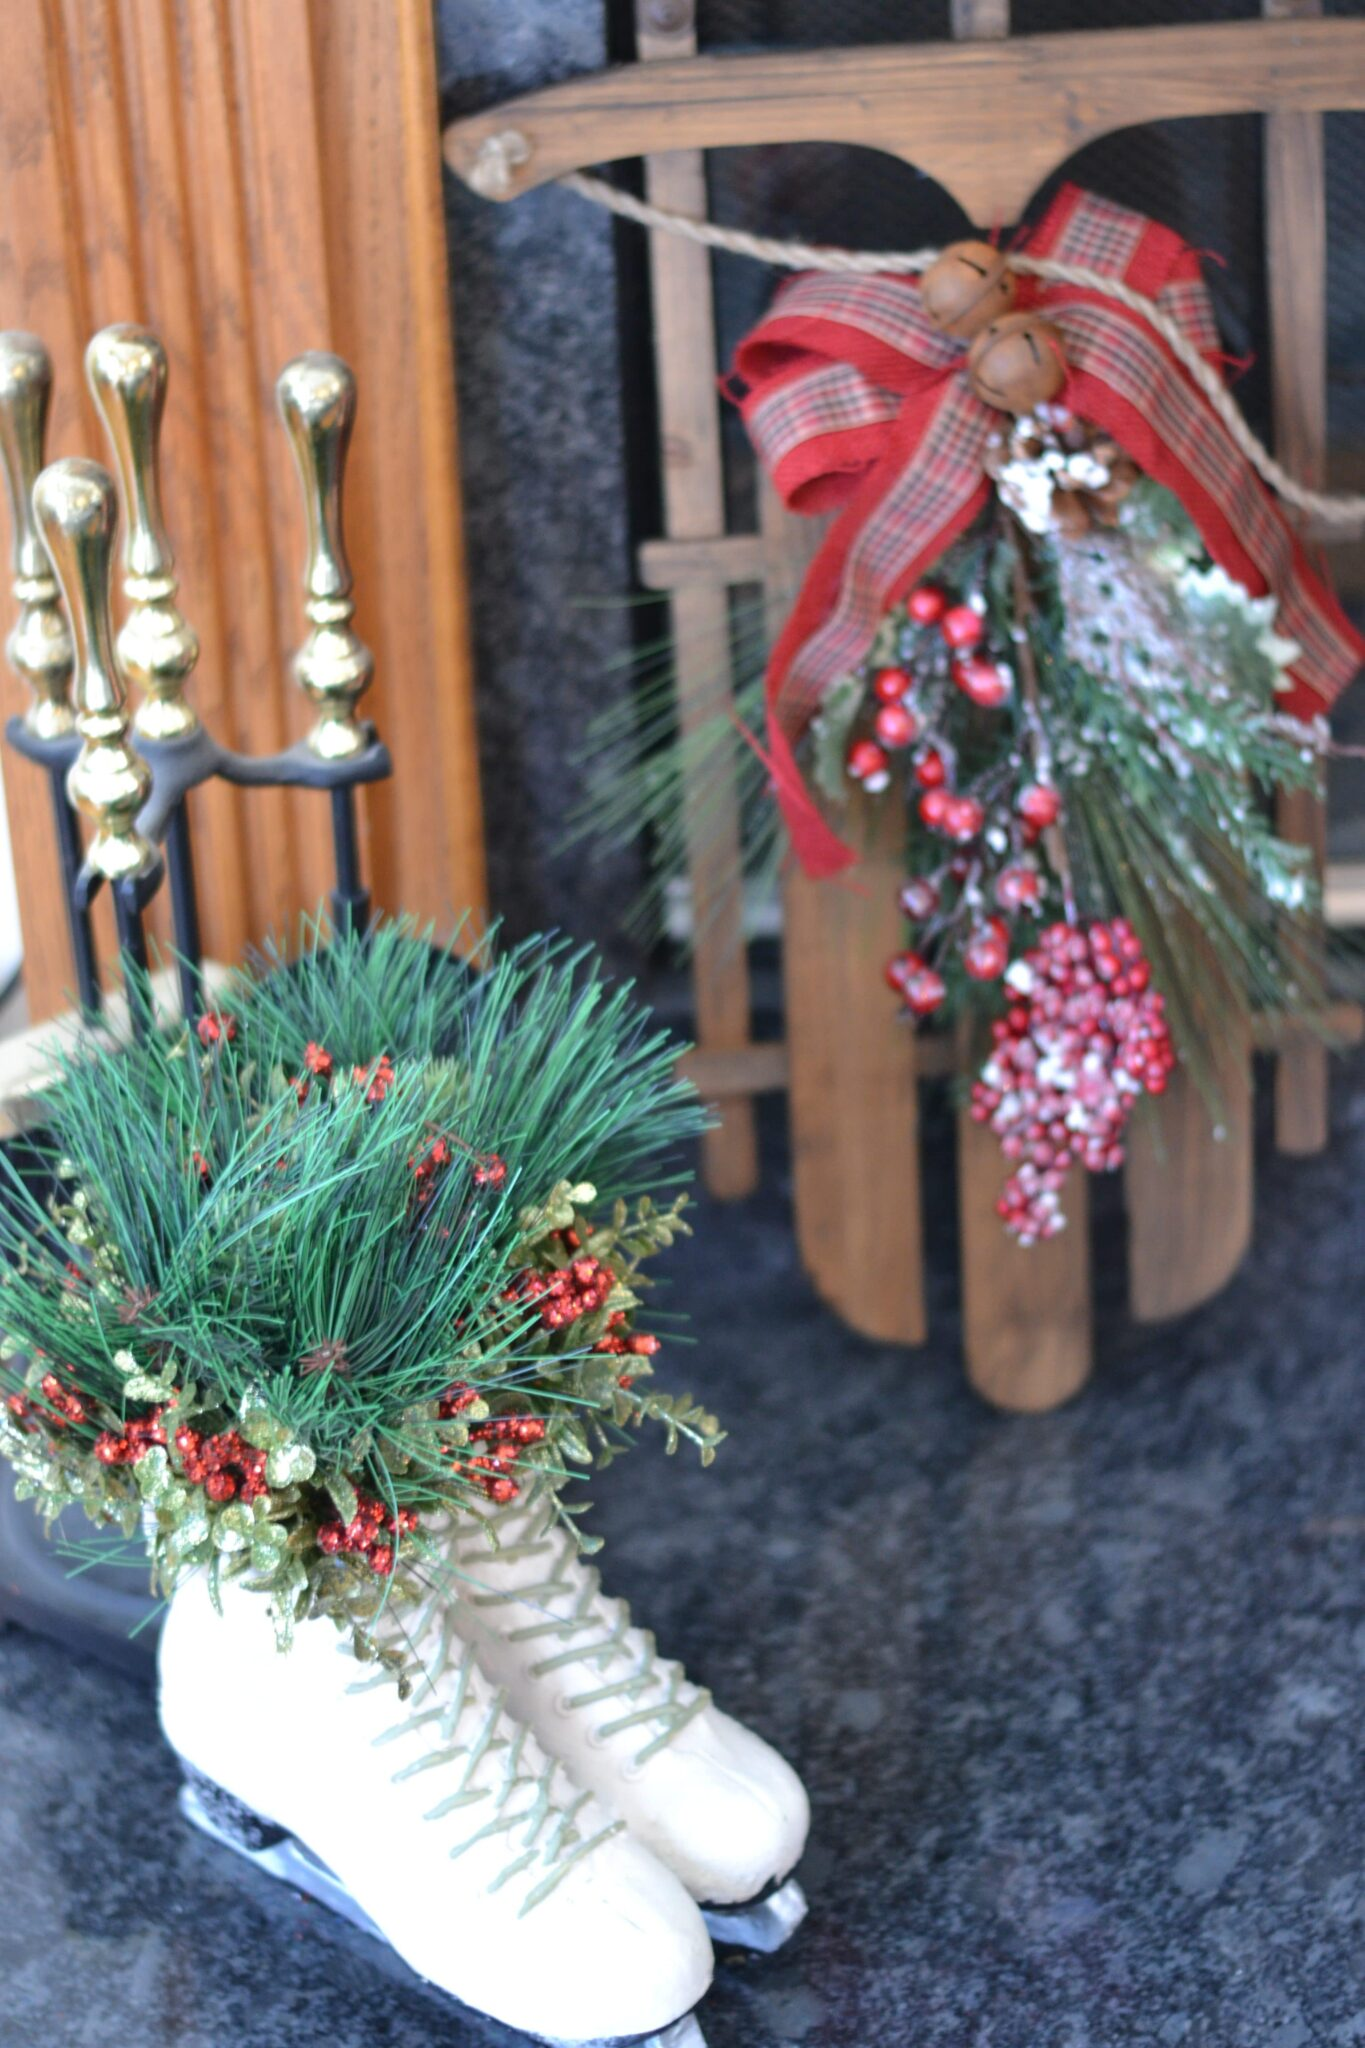 Get your Christmas groove on with Boscov's #BoscovsHolidayHomeTour ...